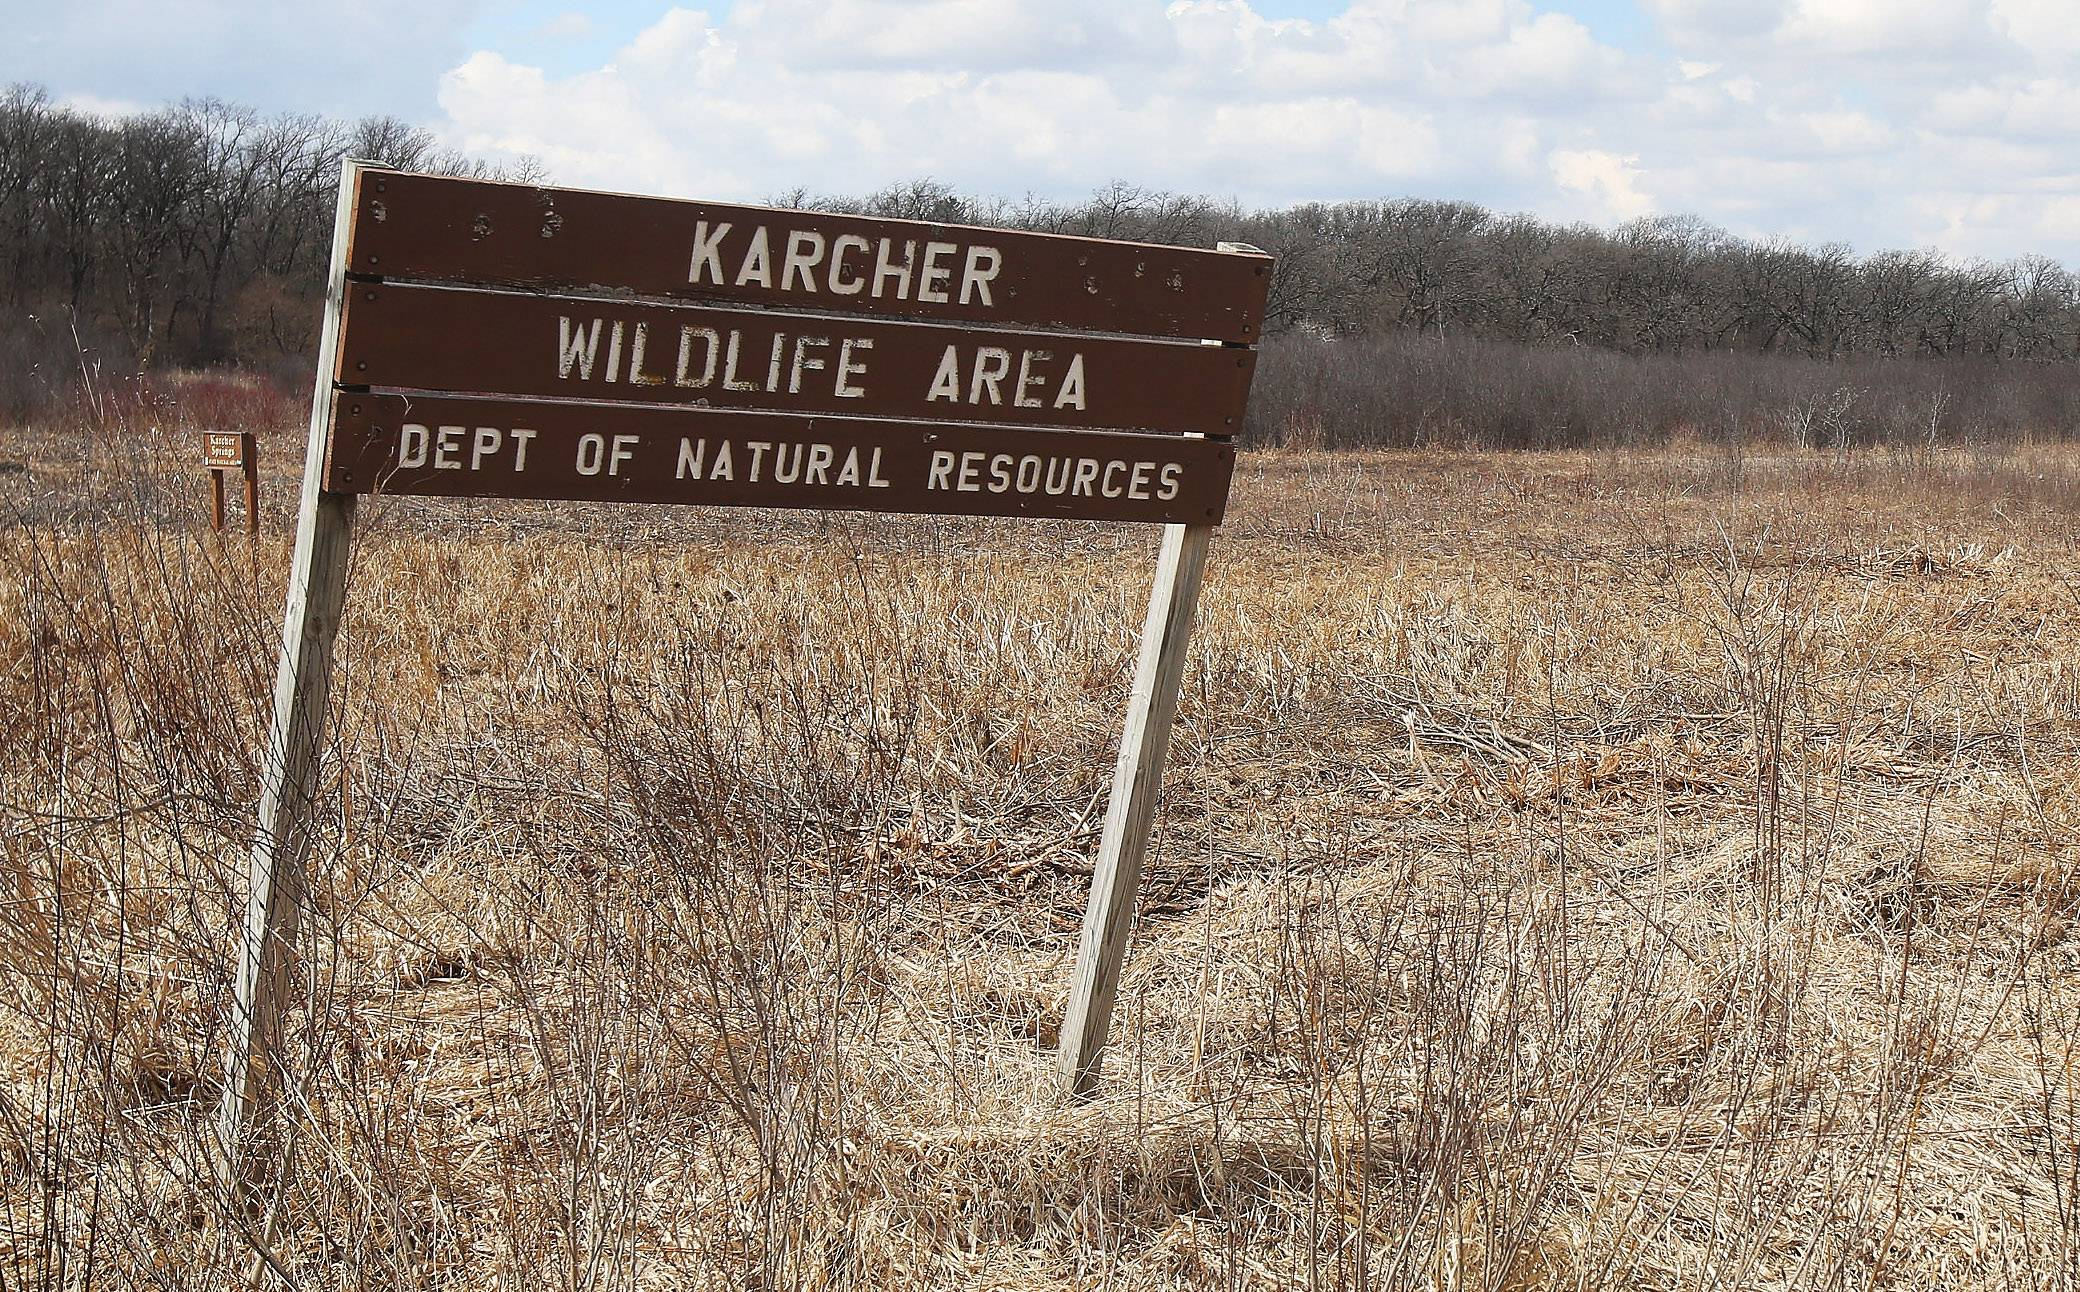 Amber Creek's body was found in the Karcher Wildlife Area in Burlington, Wis. Authorities say a Palatine man beat and suffocated the 14-year-old girl to death then left her in the wooded area.